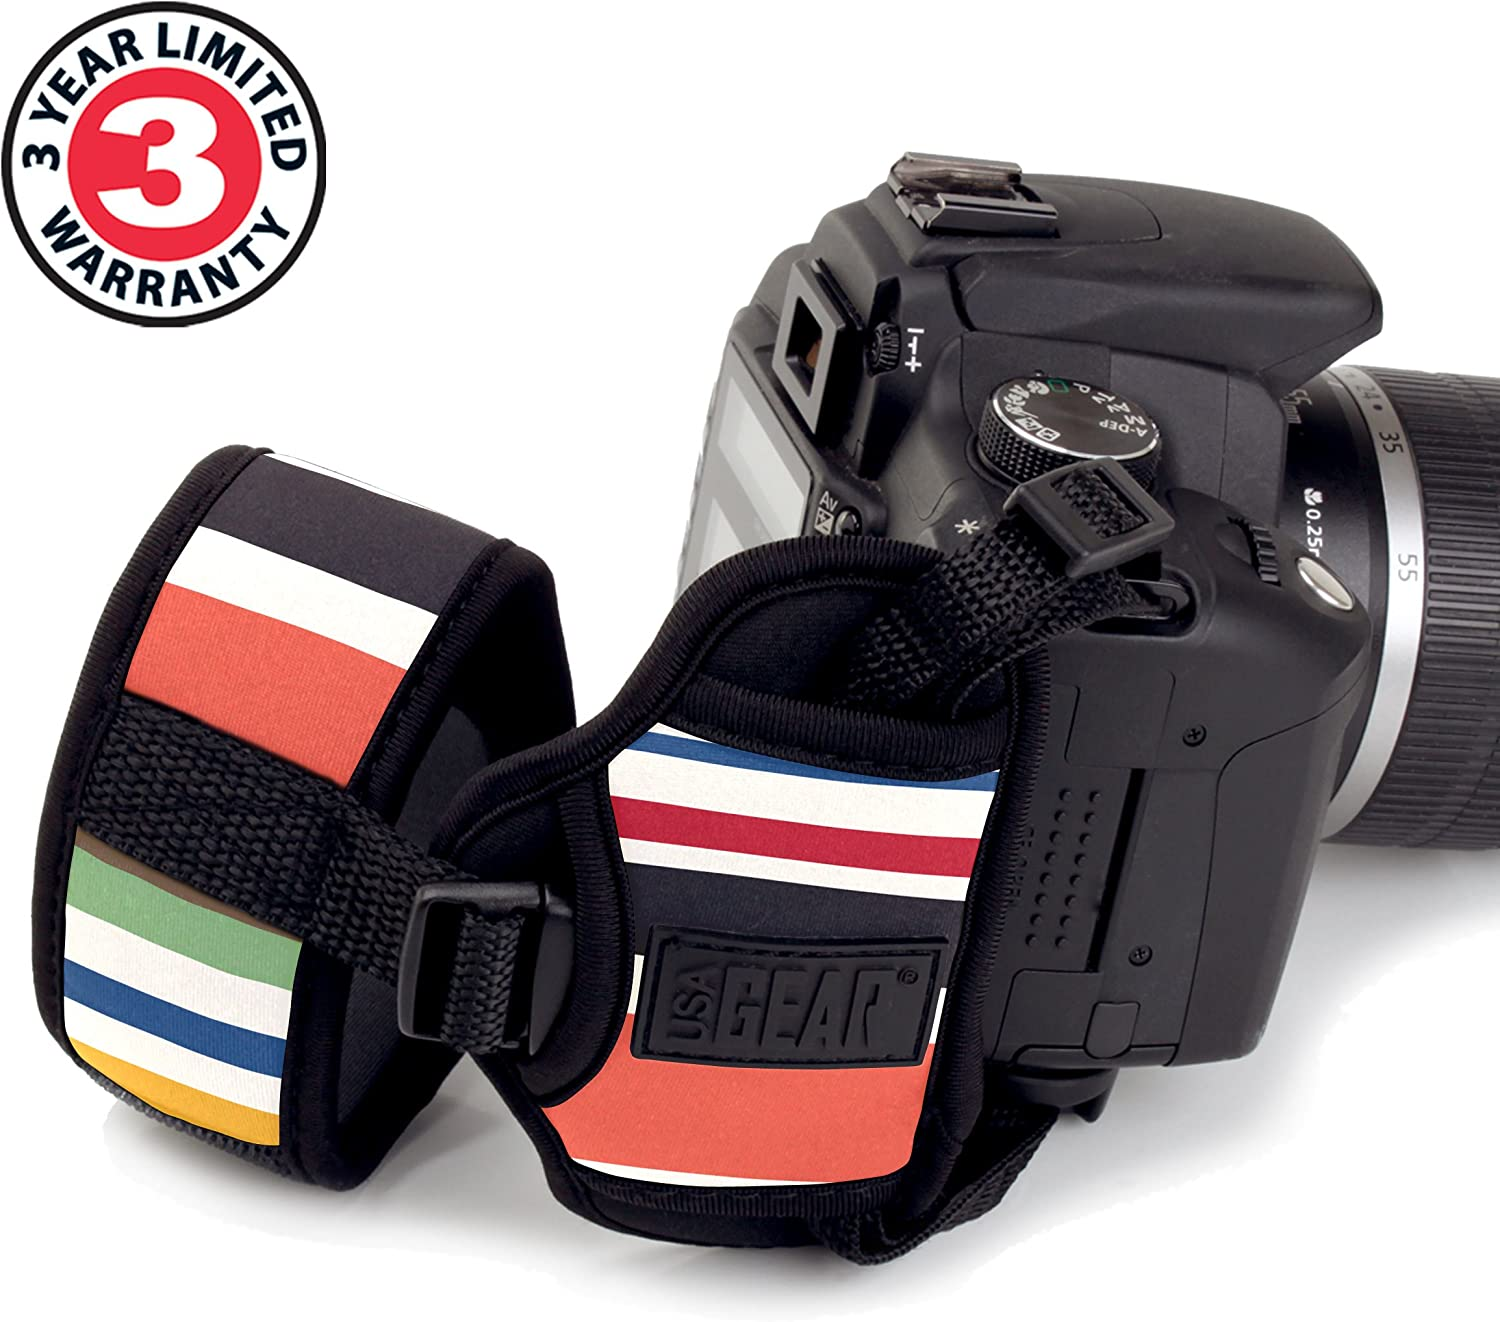 Mirrorless Cameras Compatible with Canon Fujifilm Sony Panasonic and More DSLR Secure Metal Plate Striped Nikon USA GEAR Camera Hand Wrist Strap with Comfortable Neoprene Design